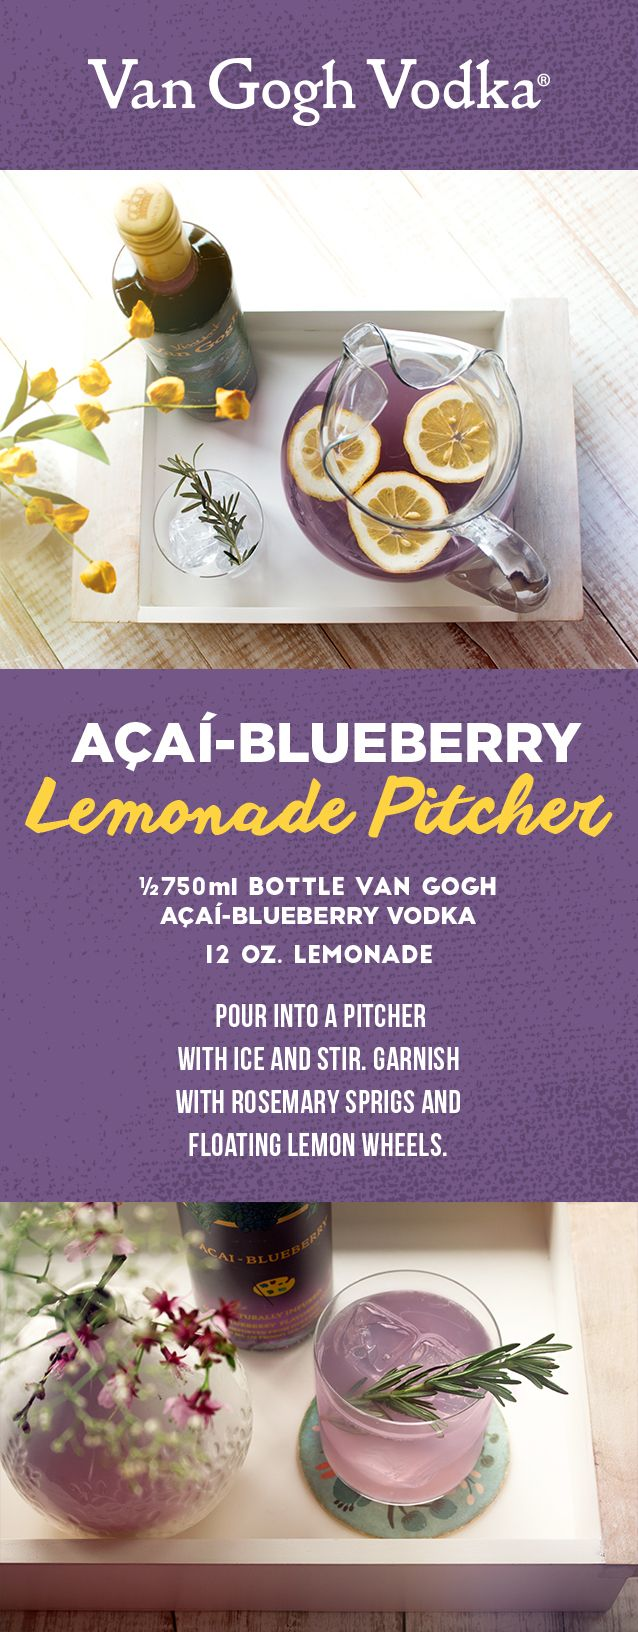 Impress at your next party with just a bottle of Van Gogh Açai-Blueberry Vodka and lemonade. Simply mix, pour and serve!